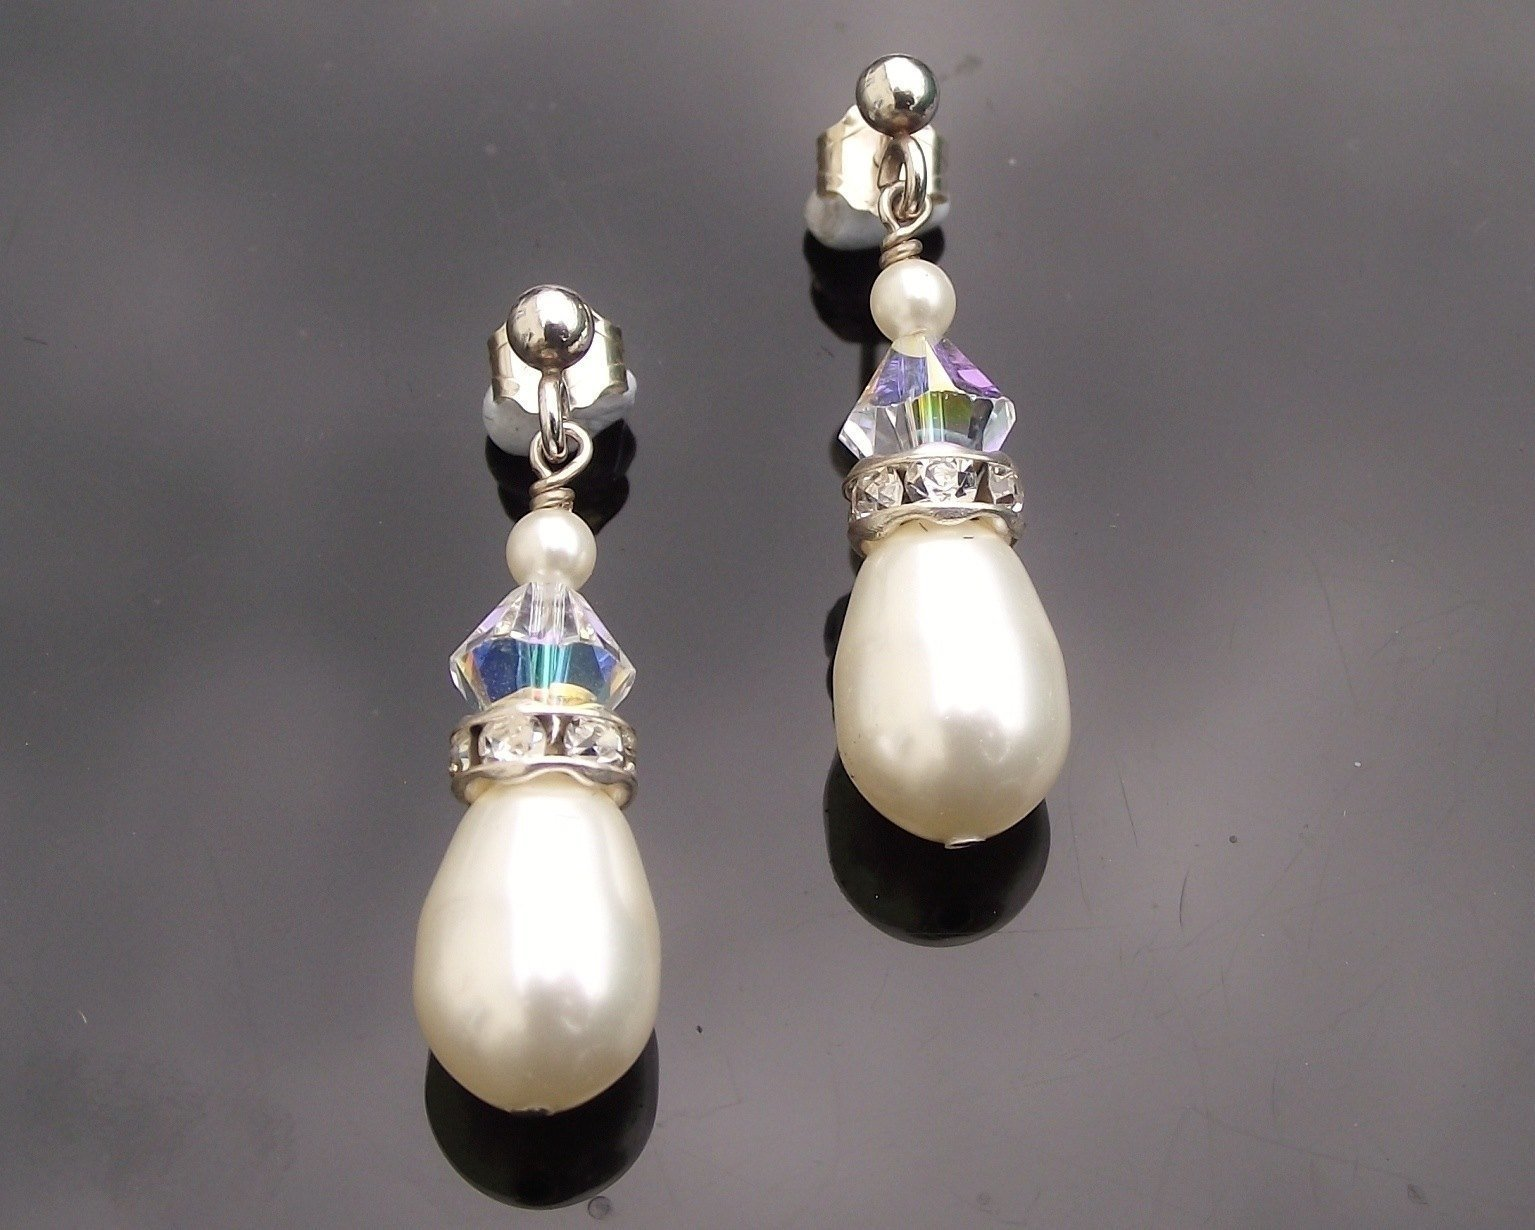 Wedding Earrings - Teardrop Pearl Wedding Earrings, Rudy